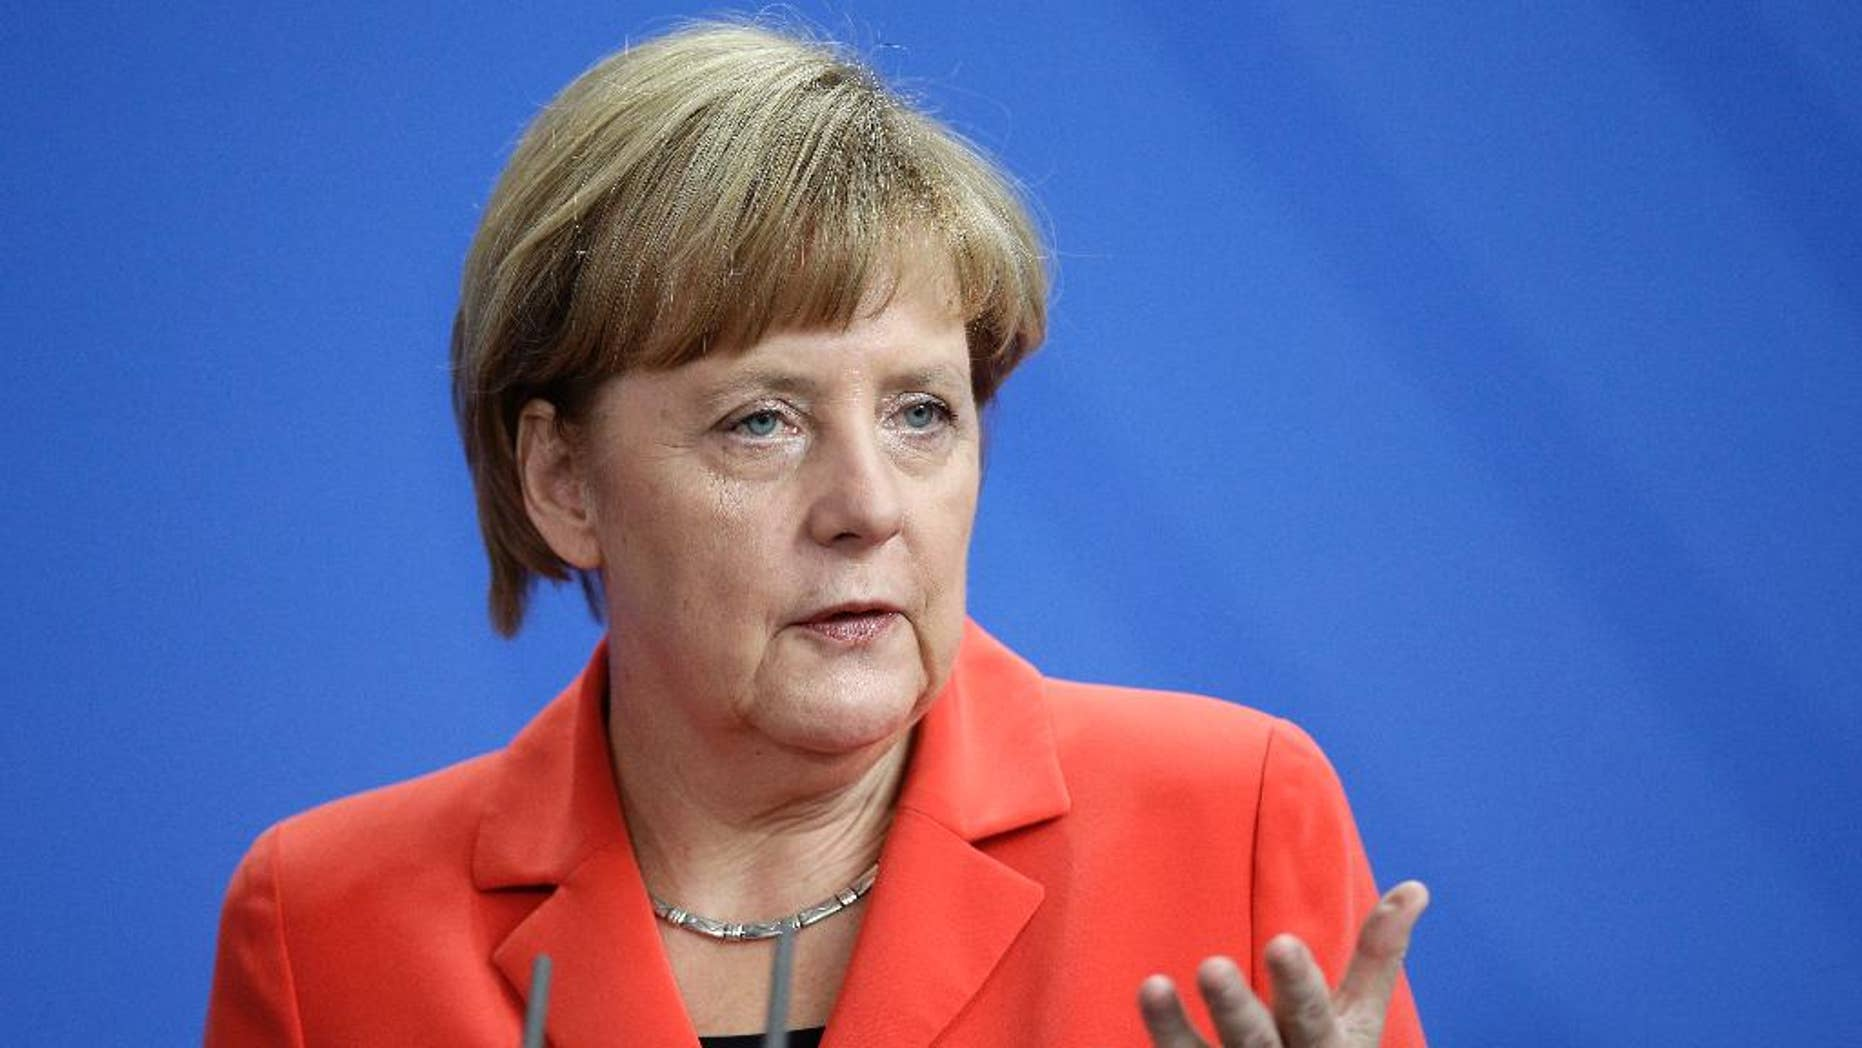 German Chancellor Angela Merkel addresses the media during a joint news conference with Prime Minister of France Manuel Valls, as part of a meeting at the chancellery in Berlin, Germany, Monday, Sept. 22, 2014. (AP Photo/Michael Sohn)